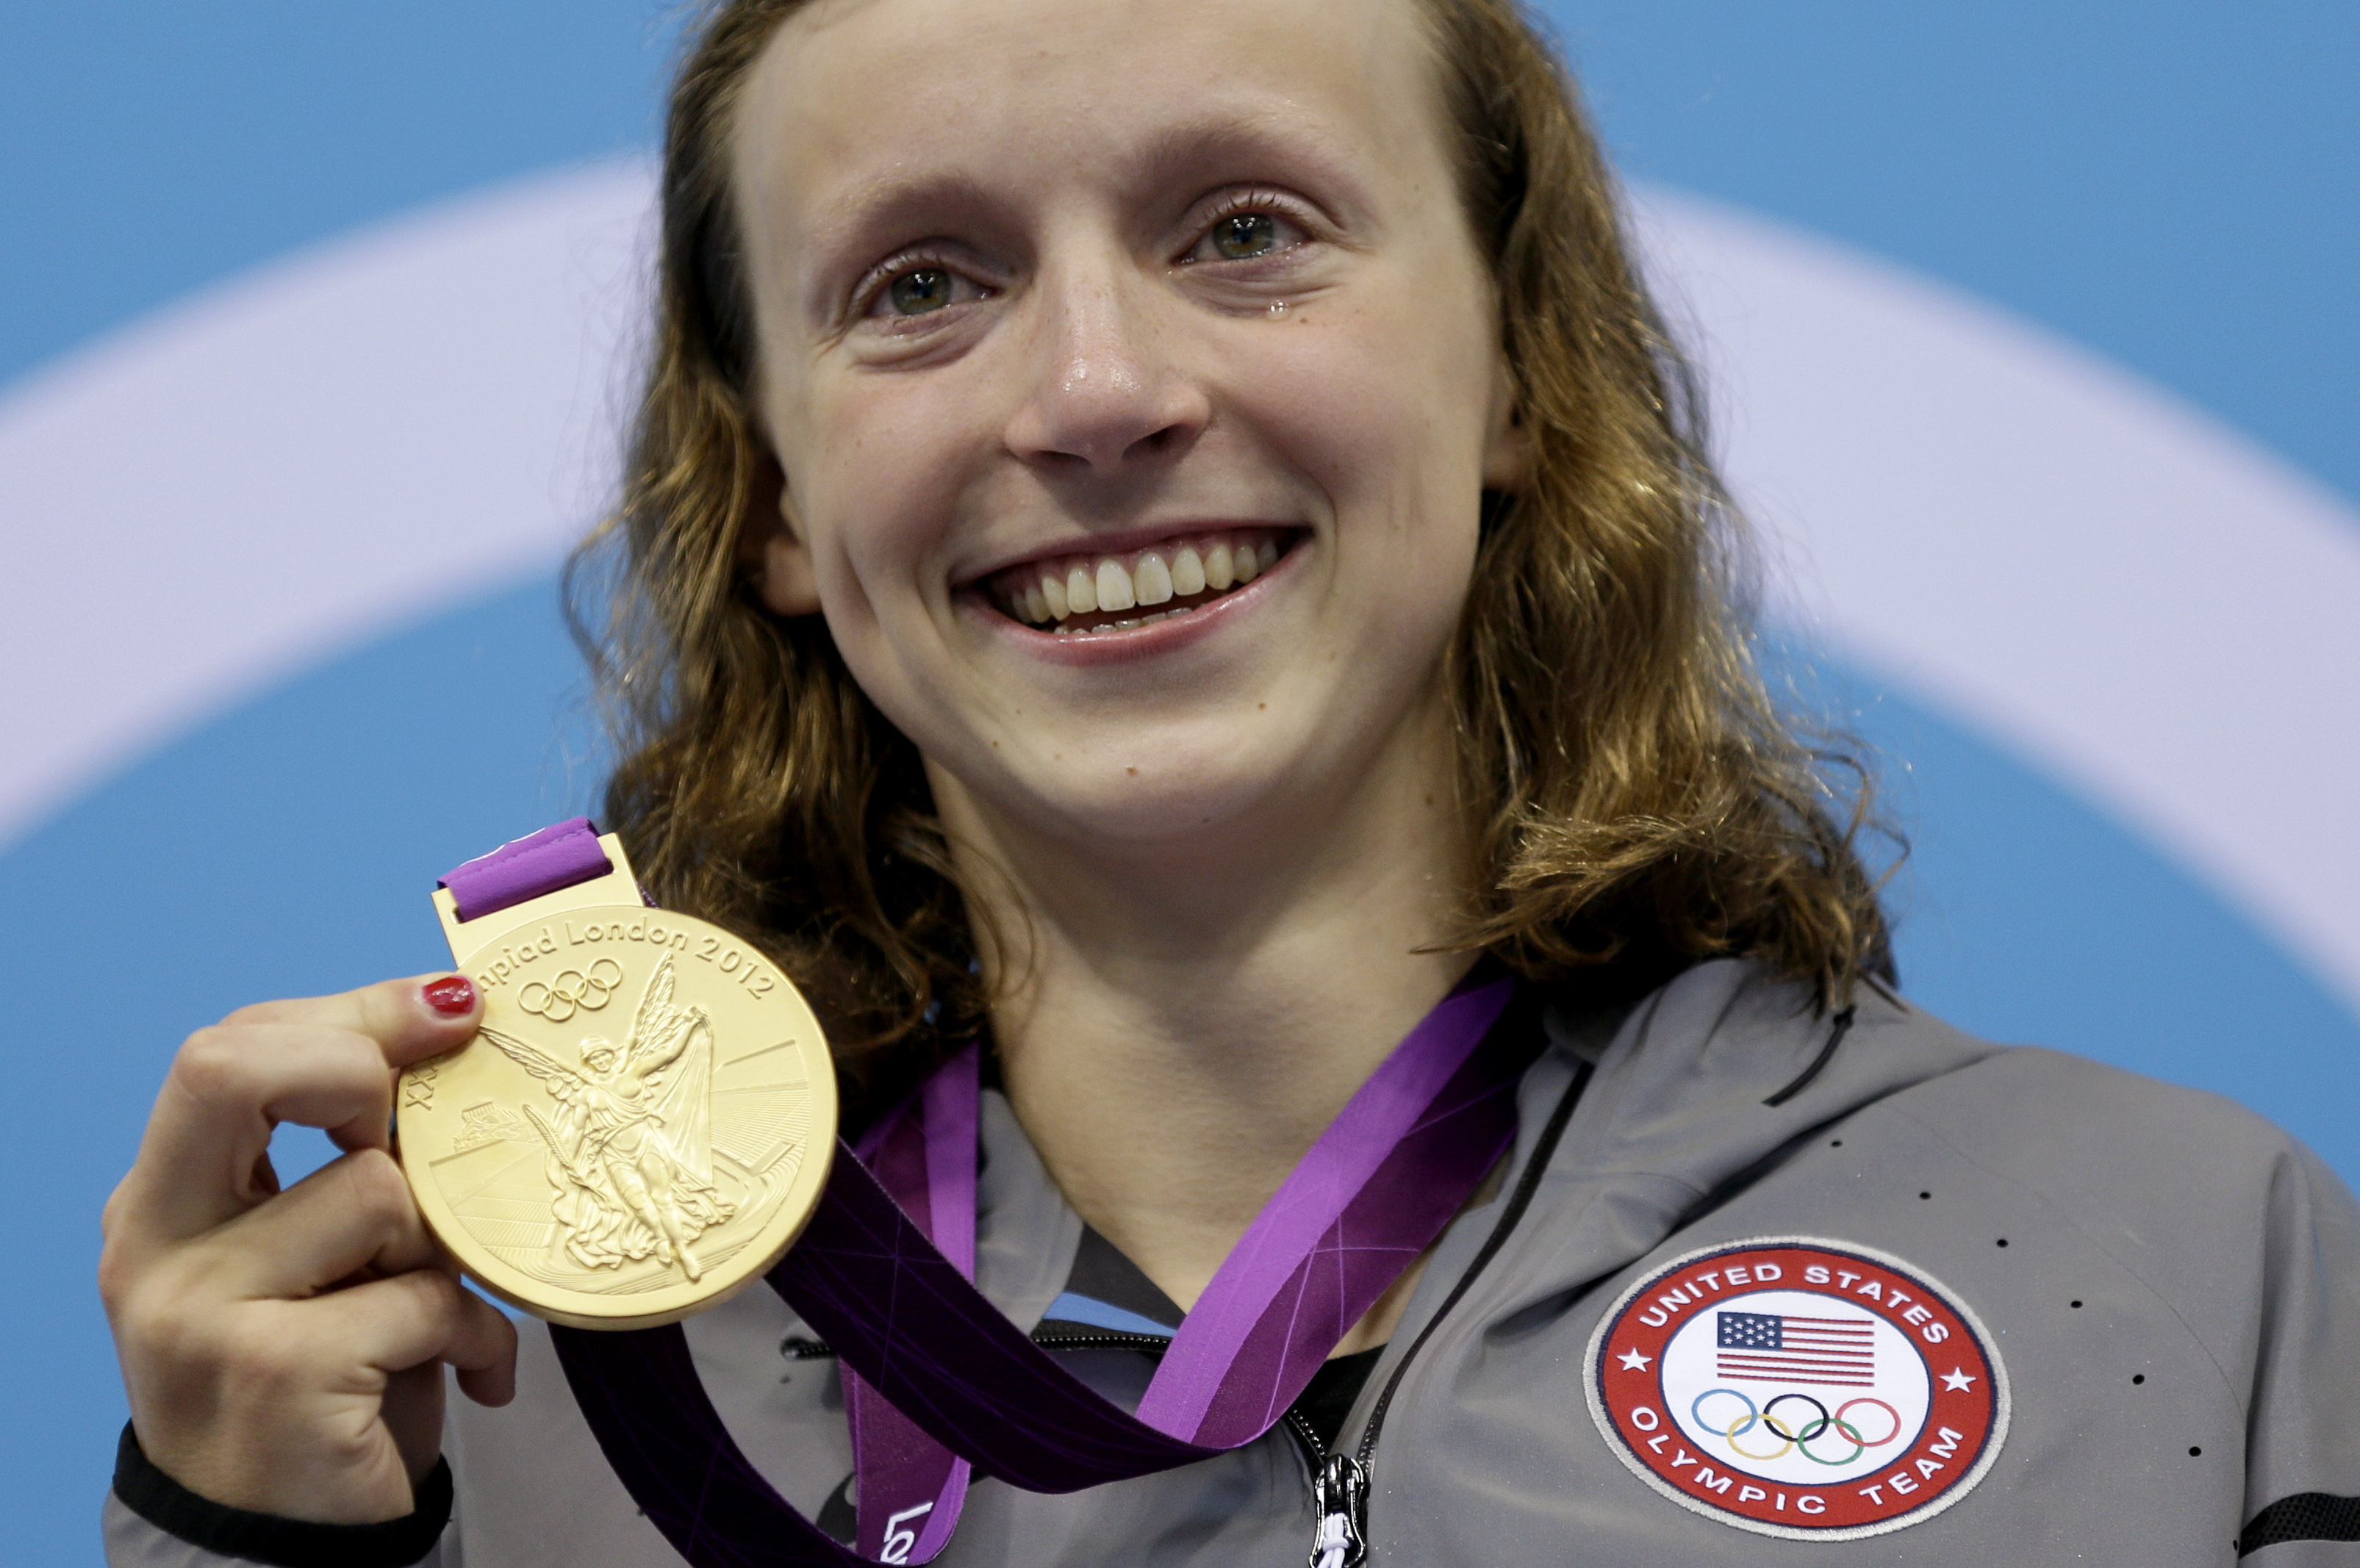 FILE - In this Aug. 3, 2012, file photo, United States' Katie Ledecky poses on the podium with her gold medal in the women's 800-meter freestyle swimming final at the Aquatics Centre in the Olympic Park during the 2012 Summer Olympics in London. Ledecky h